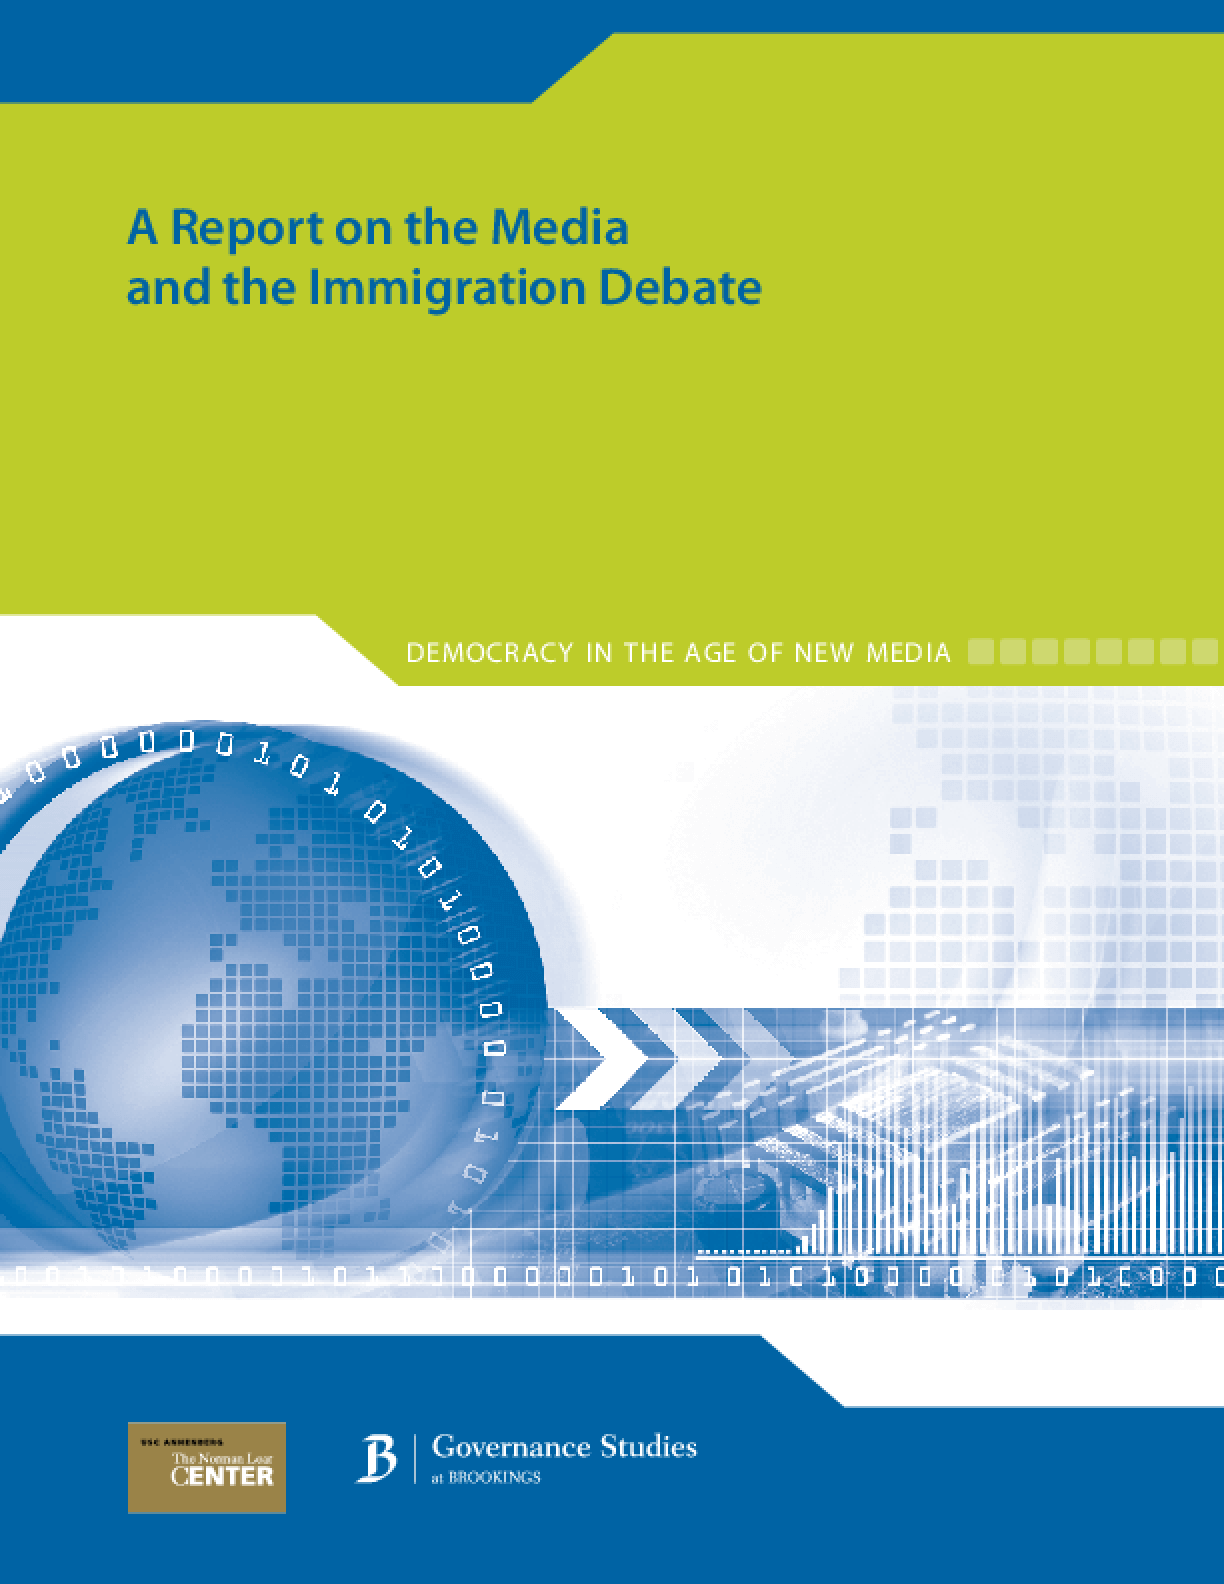 A Report on the Media and the Immigration Debate